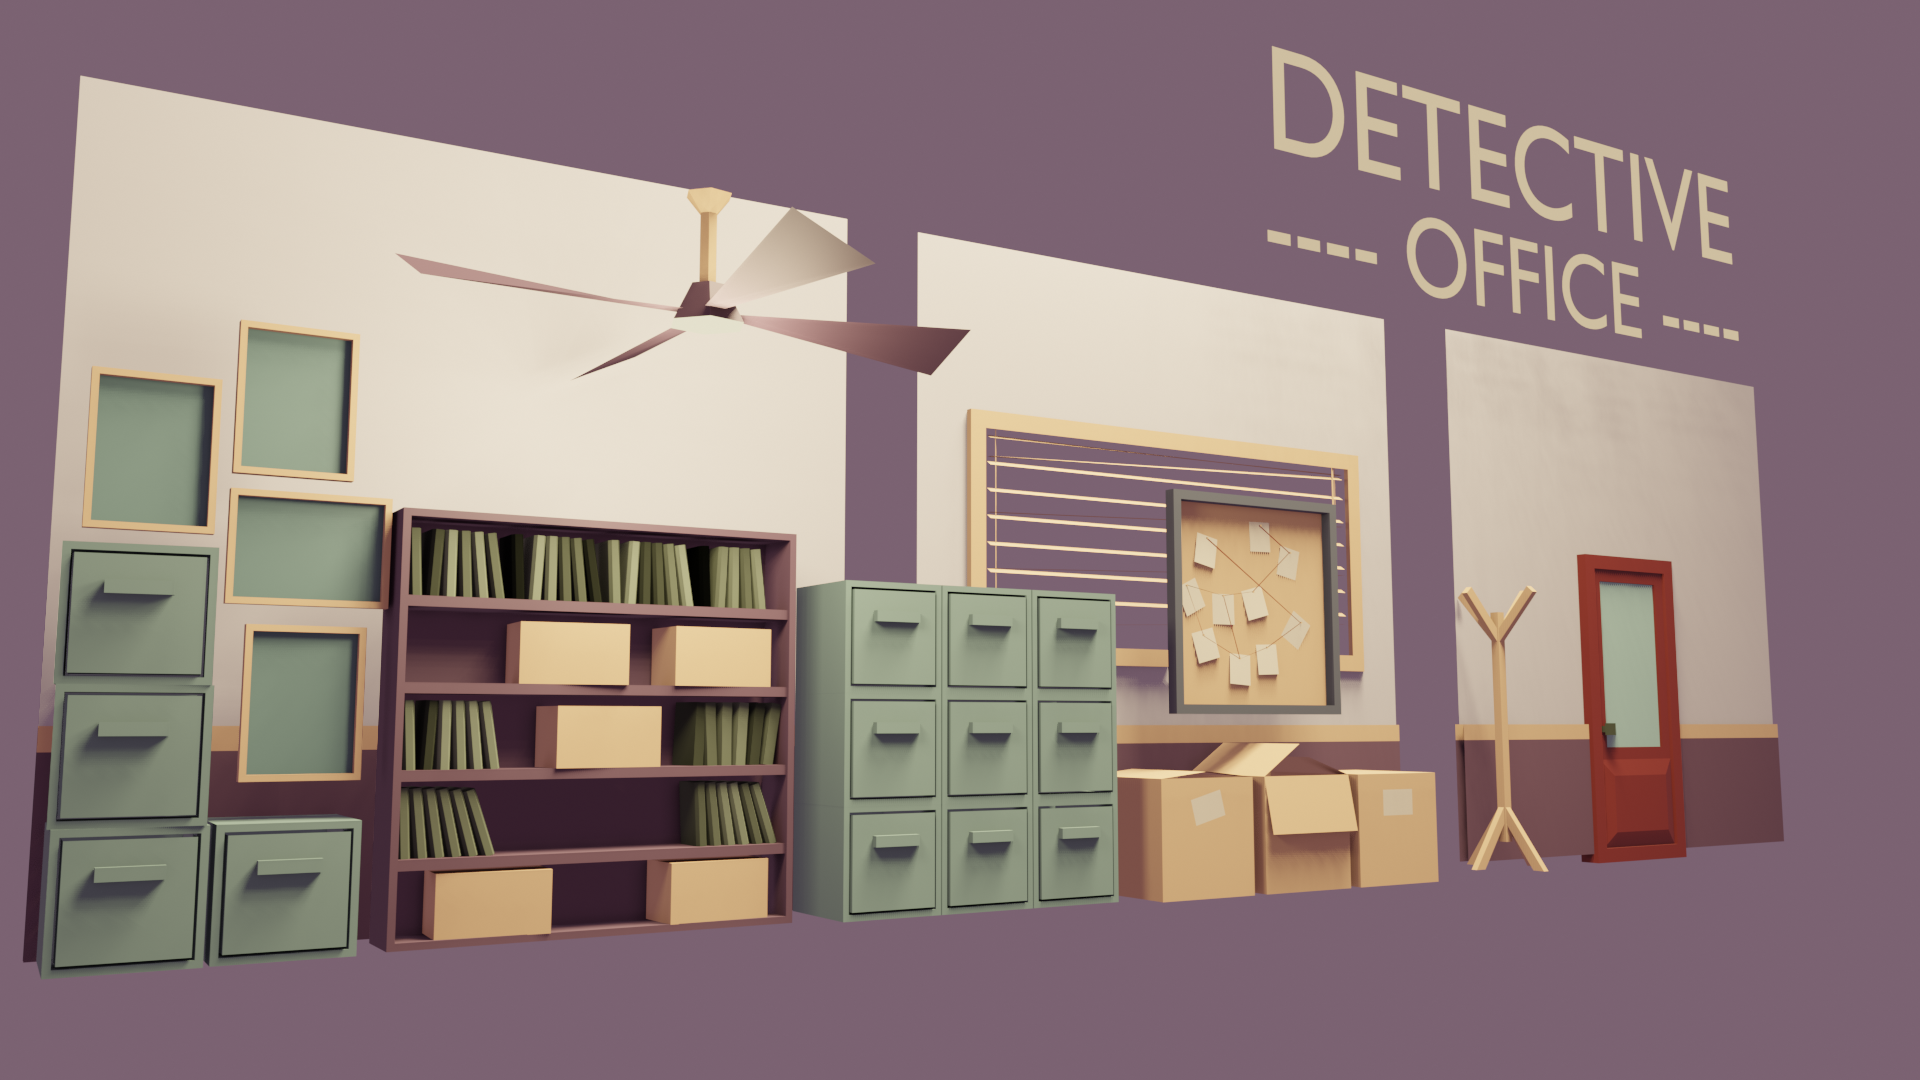 Detective Office assets